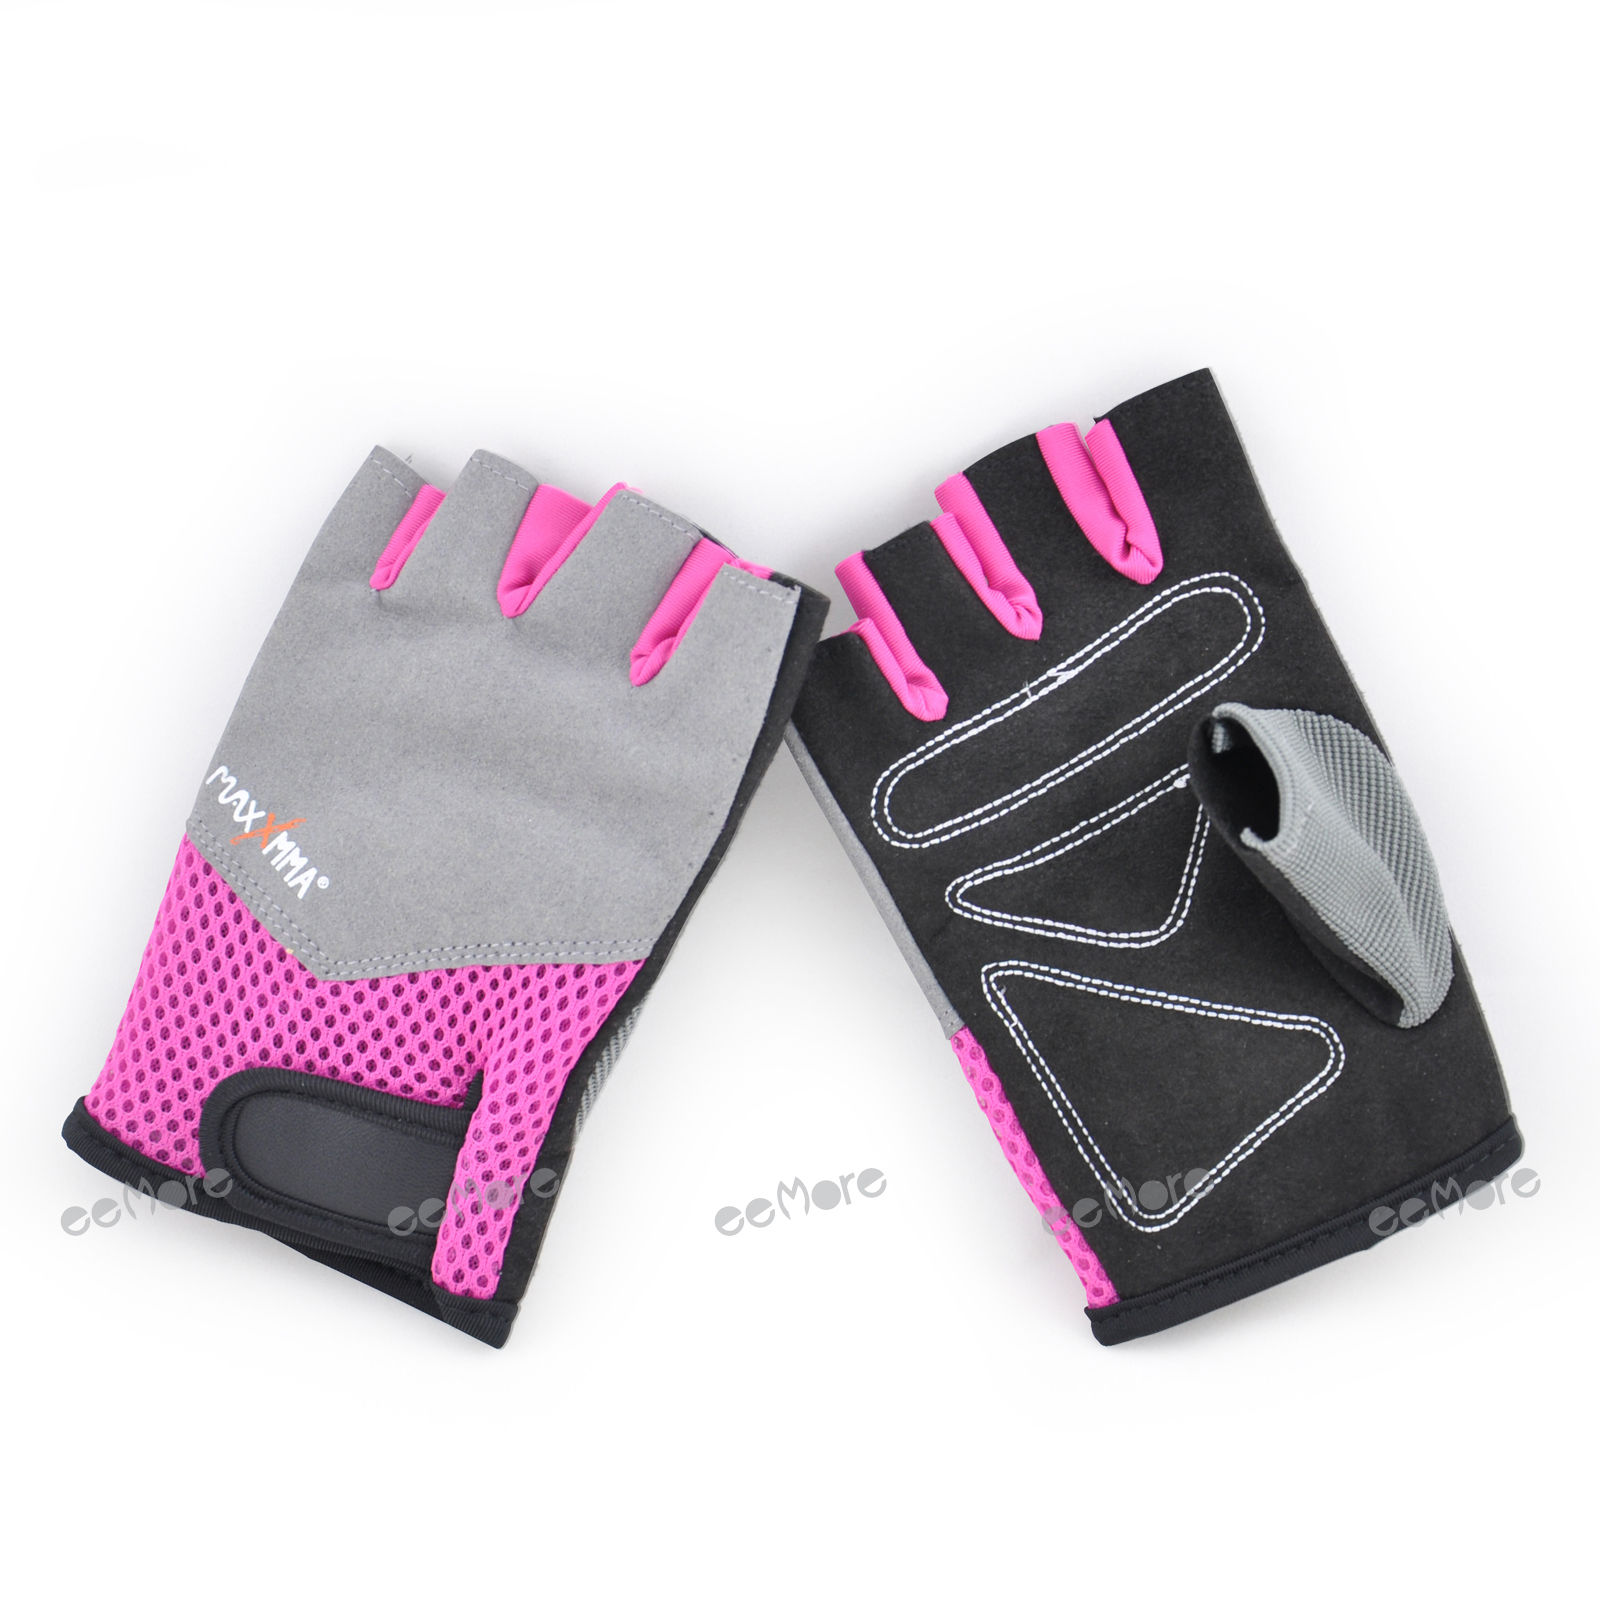 Weighted Lifting Gloves Half Finger Size M Pink For Women